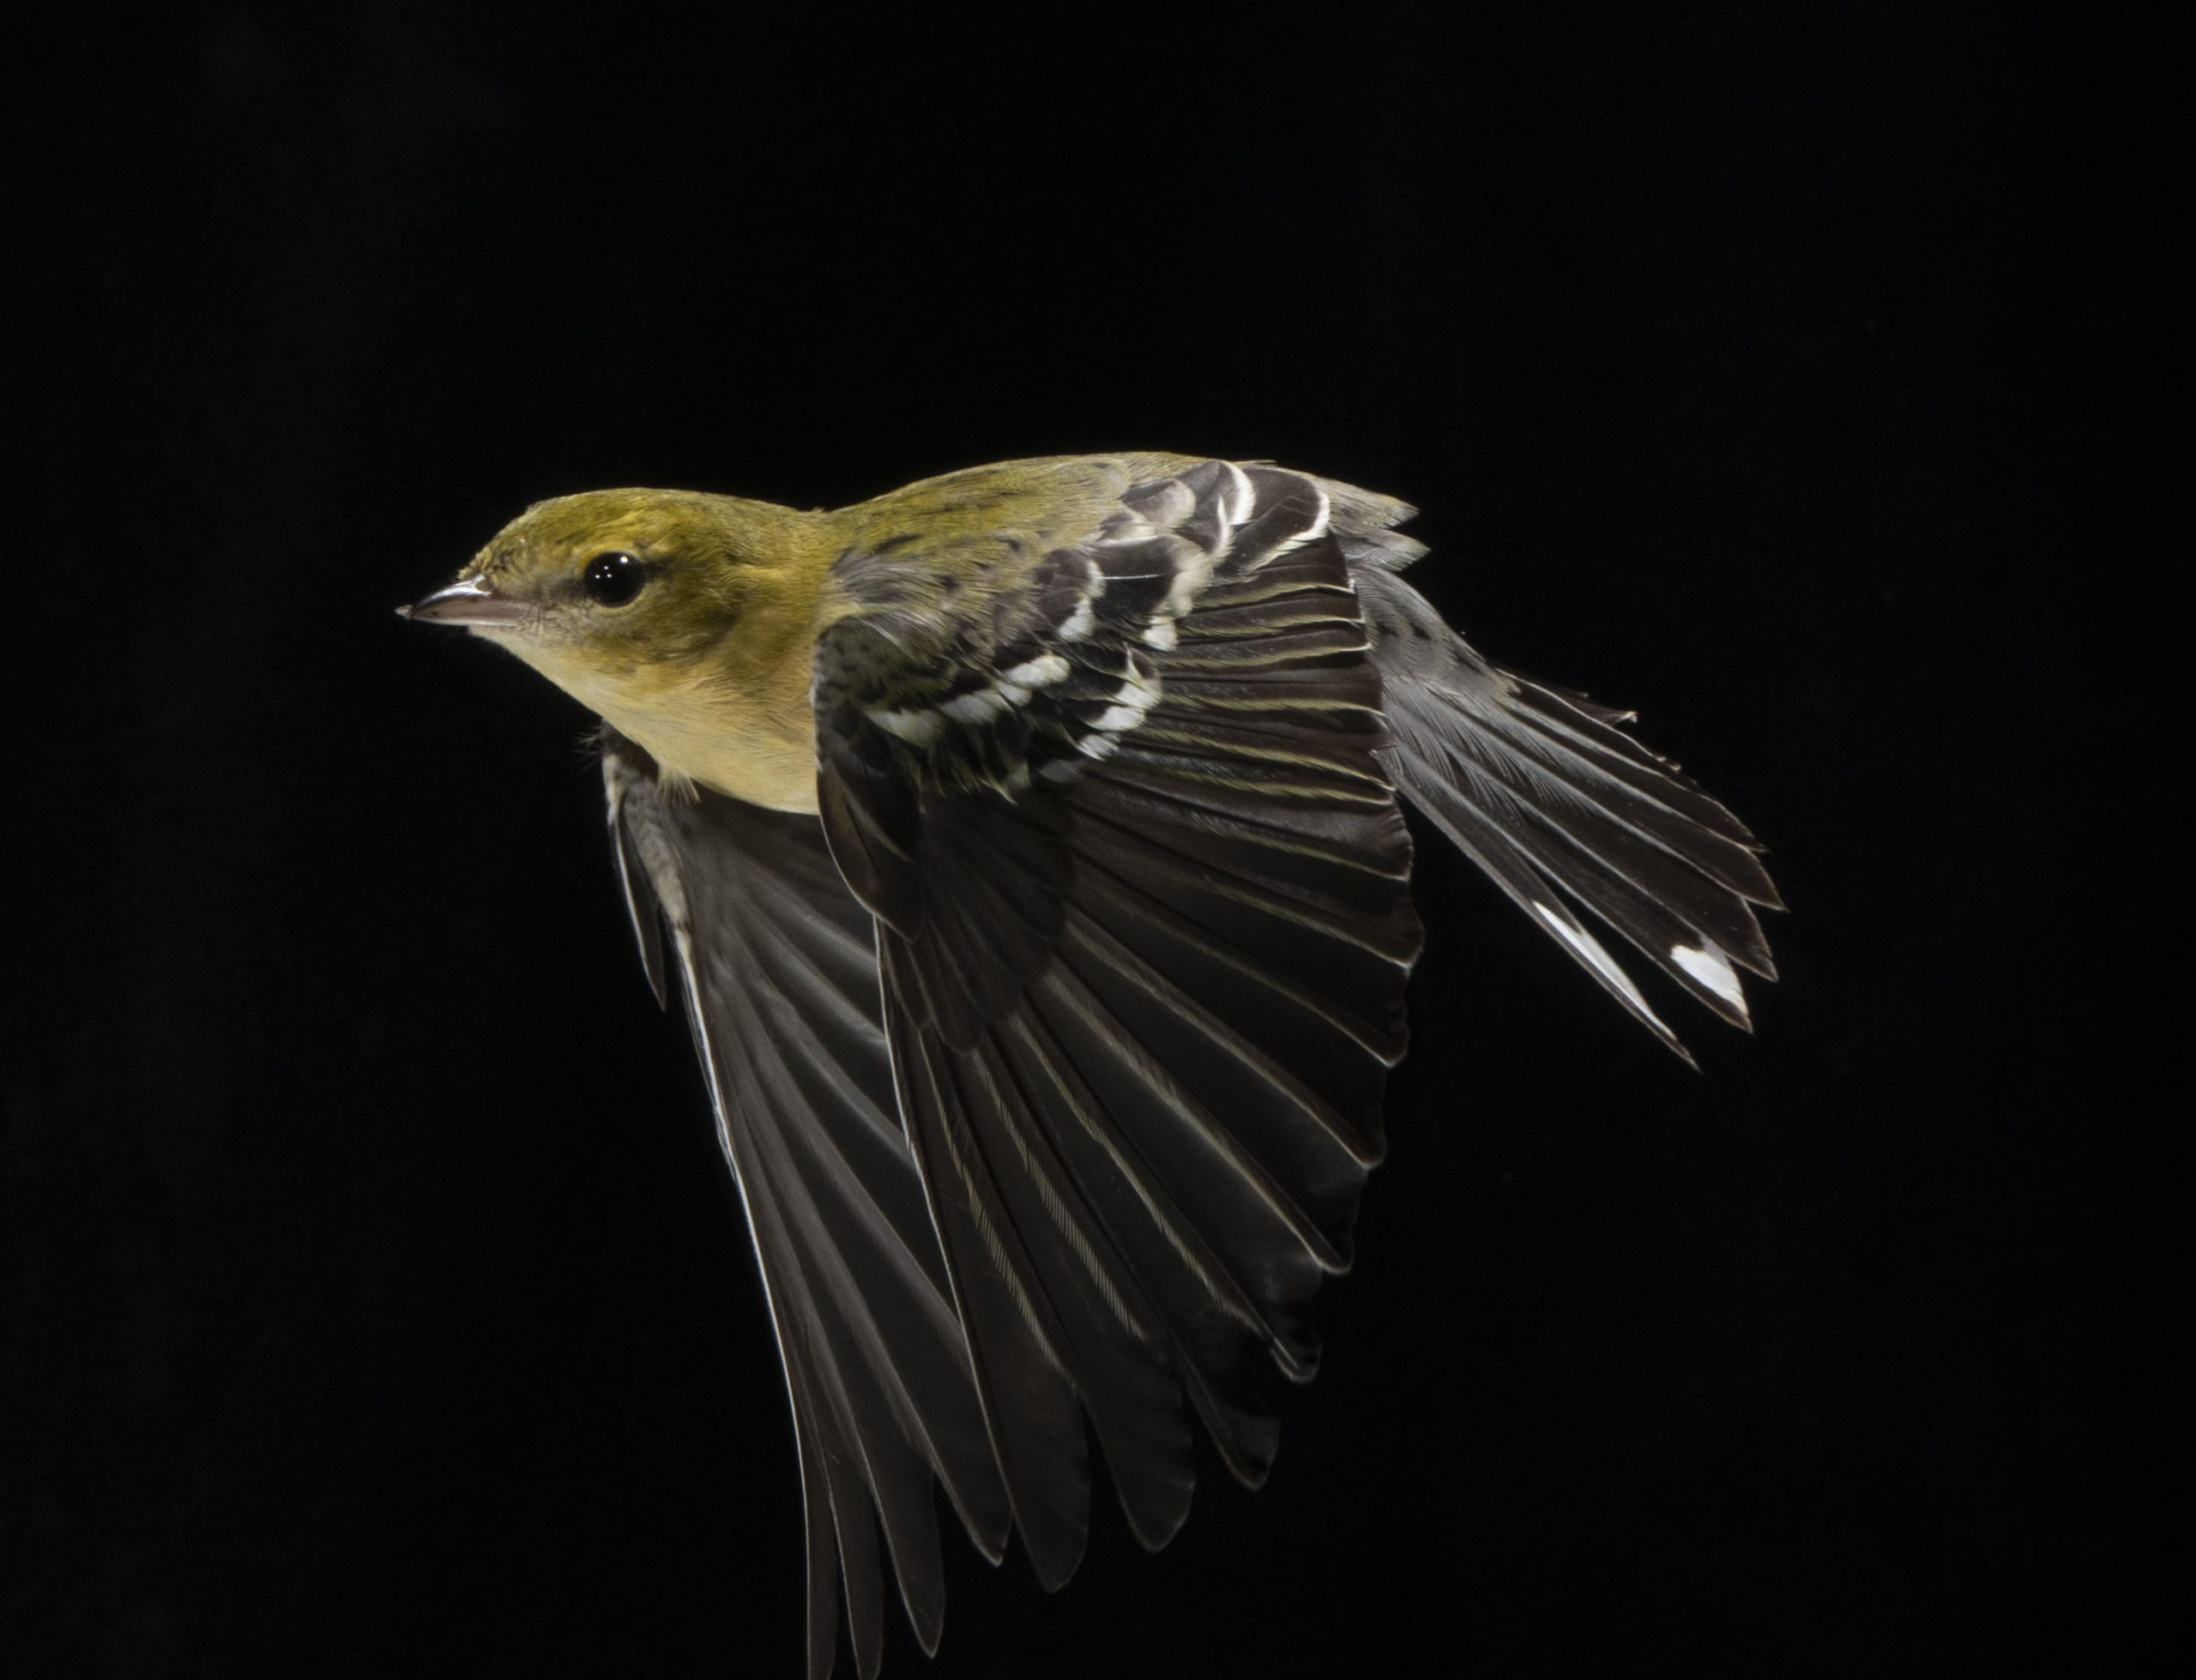 Bay-breasted Warbler in flight with a black background